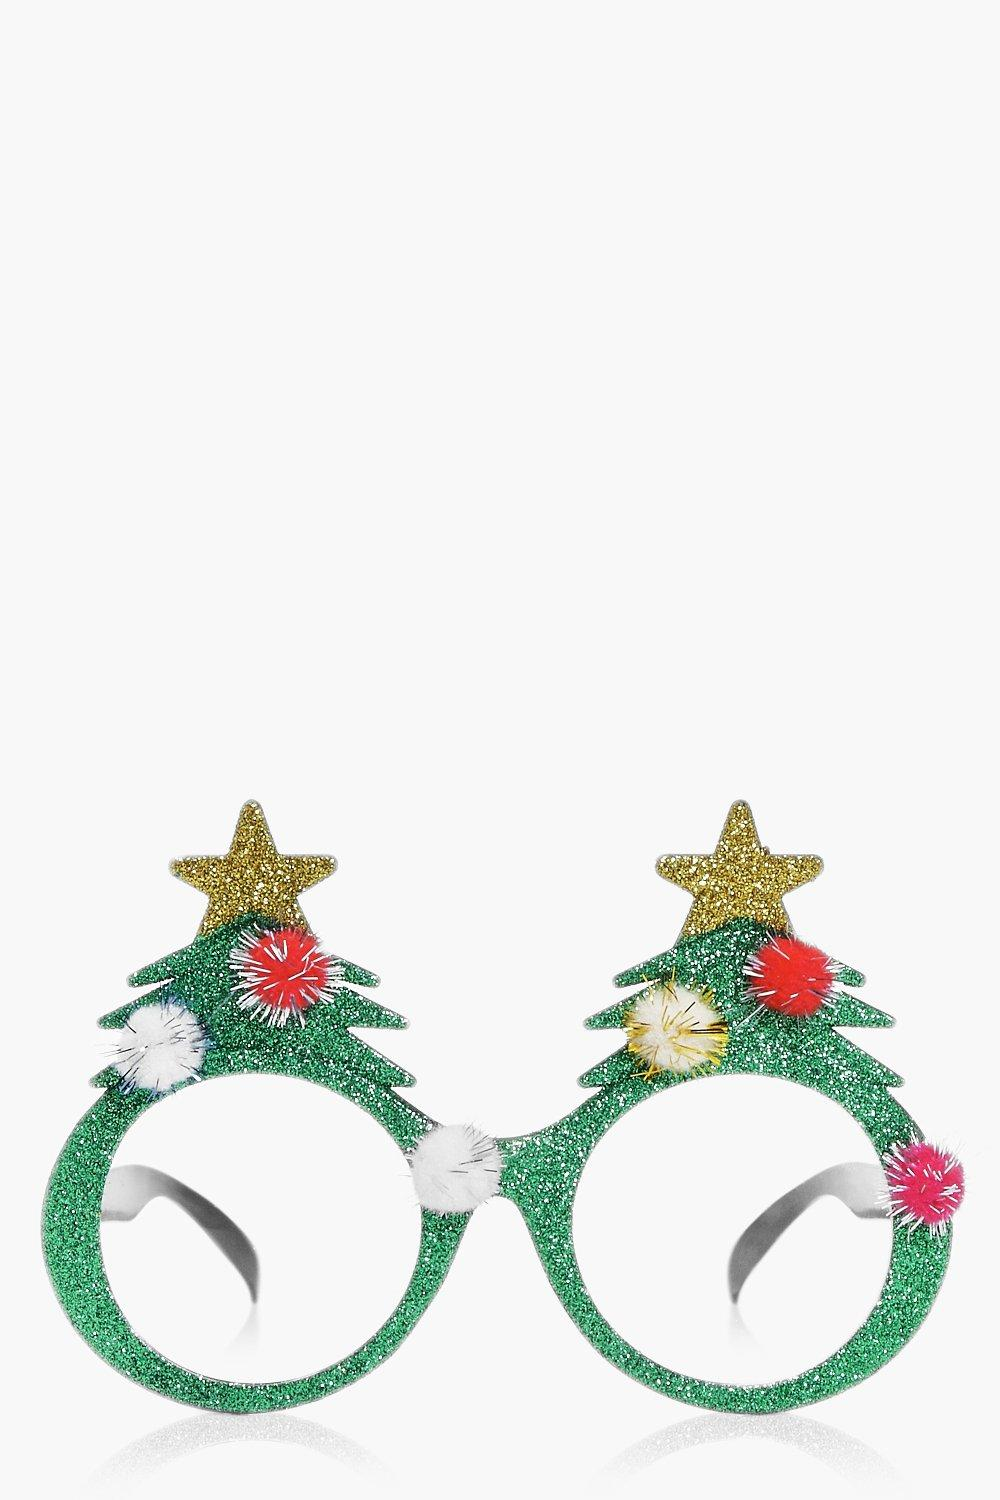 Taylor Christmas Tree Novelty Sunglasses